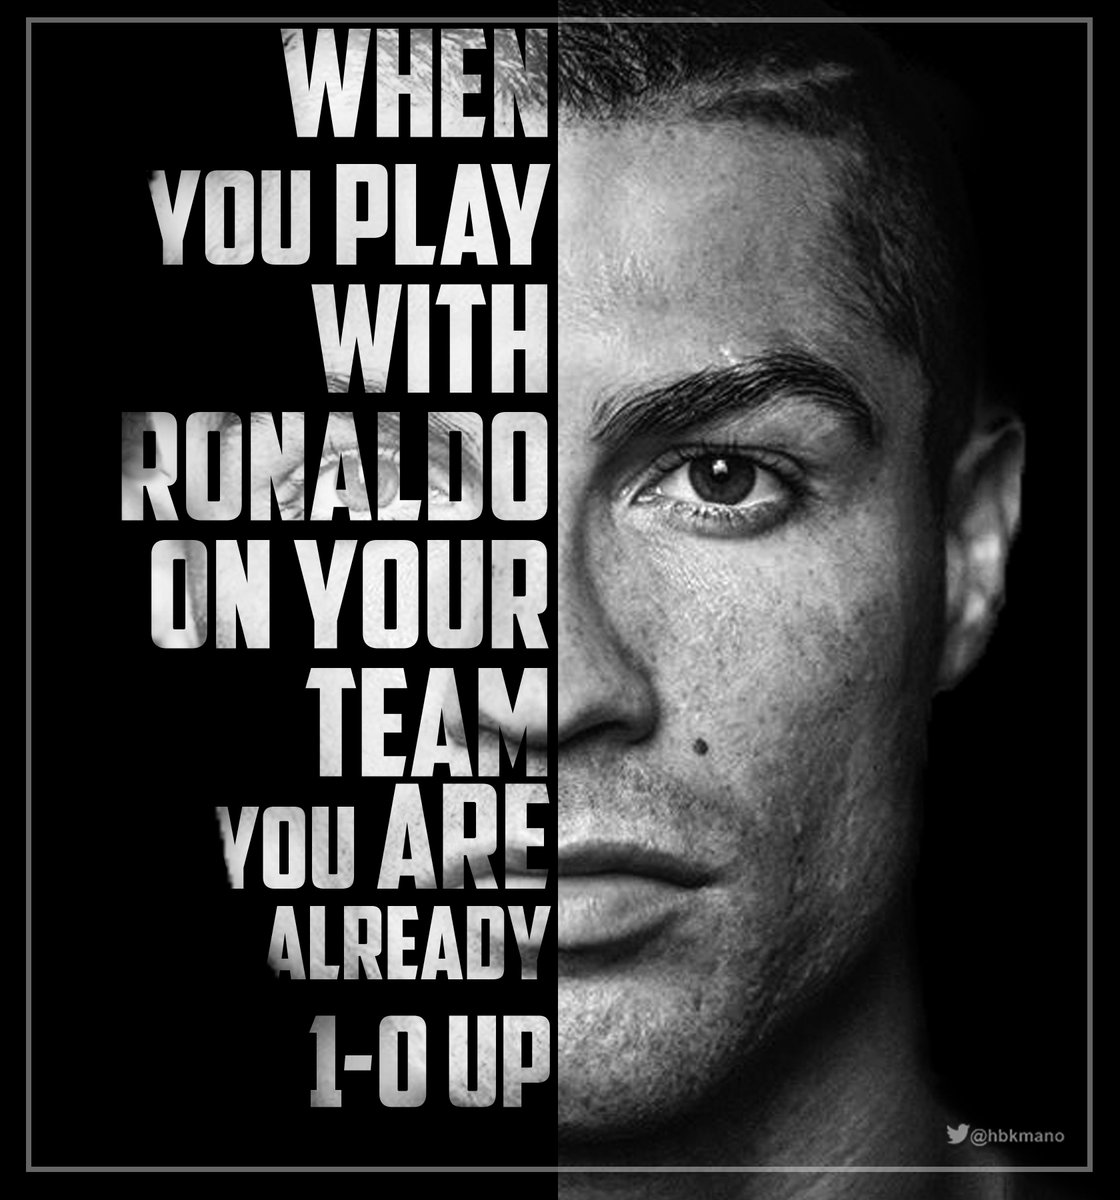 Zinedine Zidane: &quot;When you play with Ronaldo on your team, you are already 1-0 up.&quot; #HalaMadrid <br>http://pic.twitter.com/HbfrLryE91